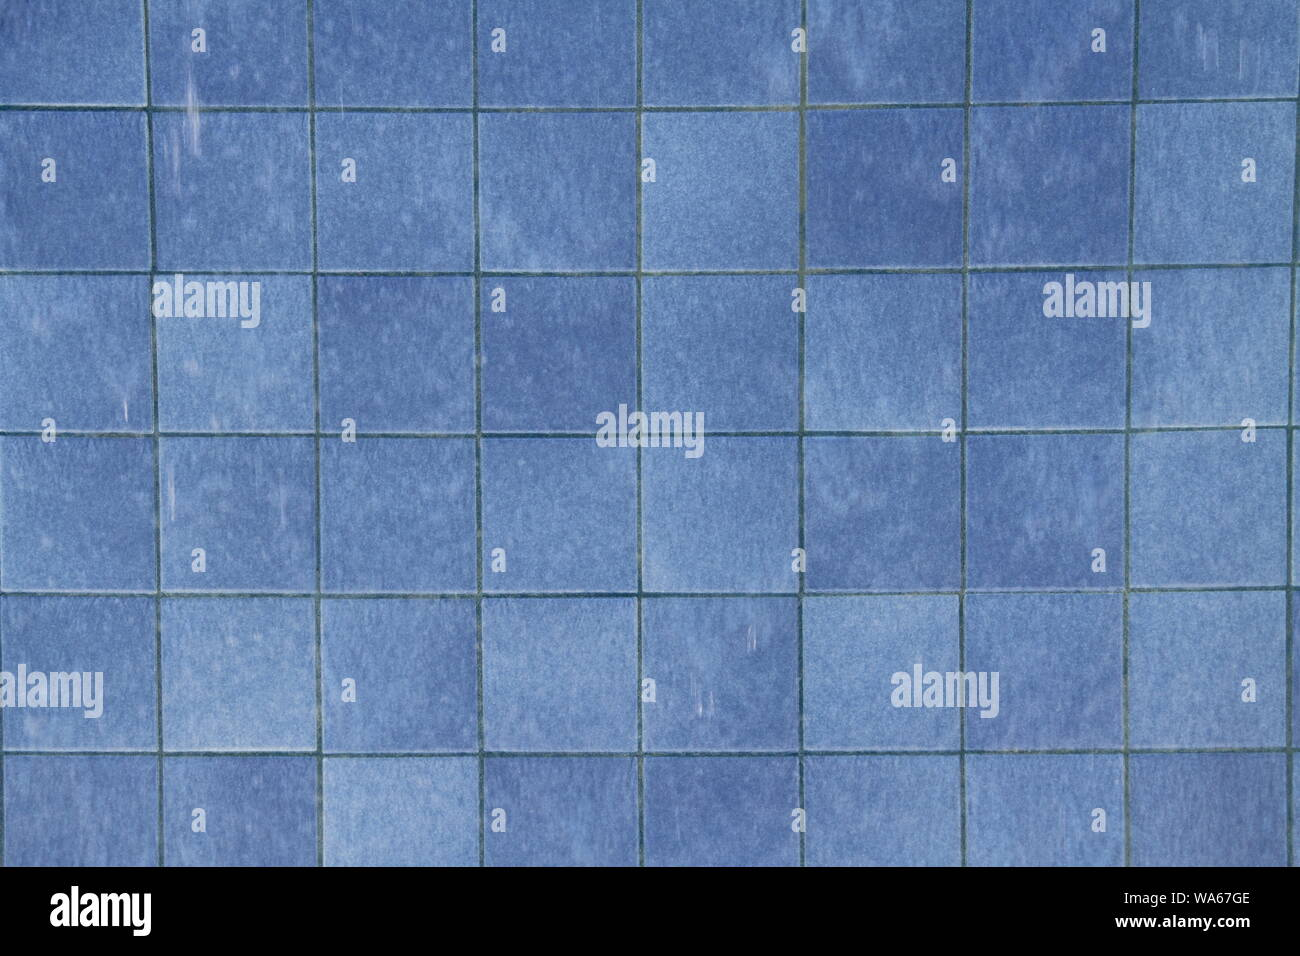 Blue Tiles Bathroom Texture High Resolution Stock Photography And Images Alamy